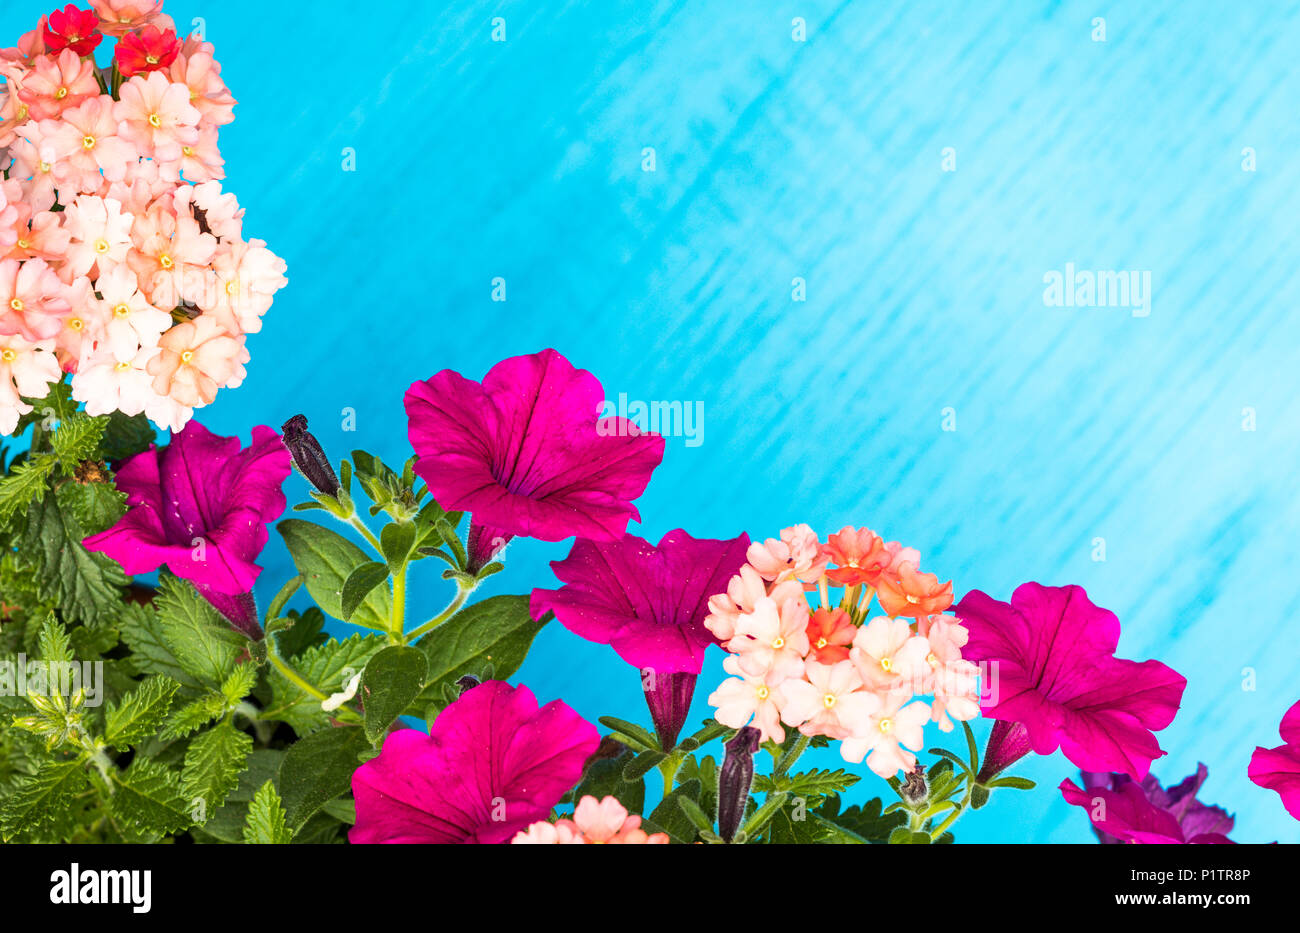 Bright And Cheerful Spring And Summer Flowers On Blue Wooden Board